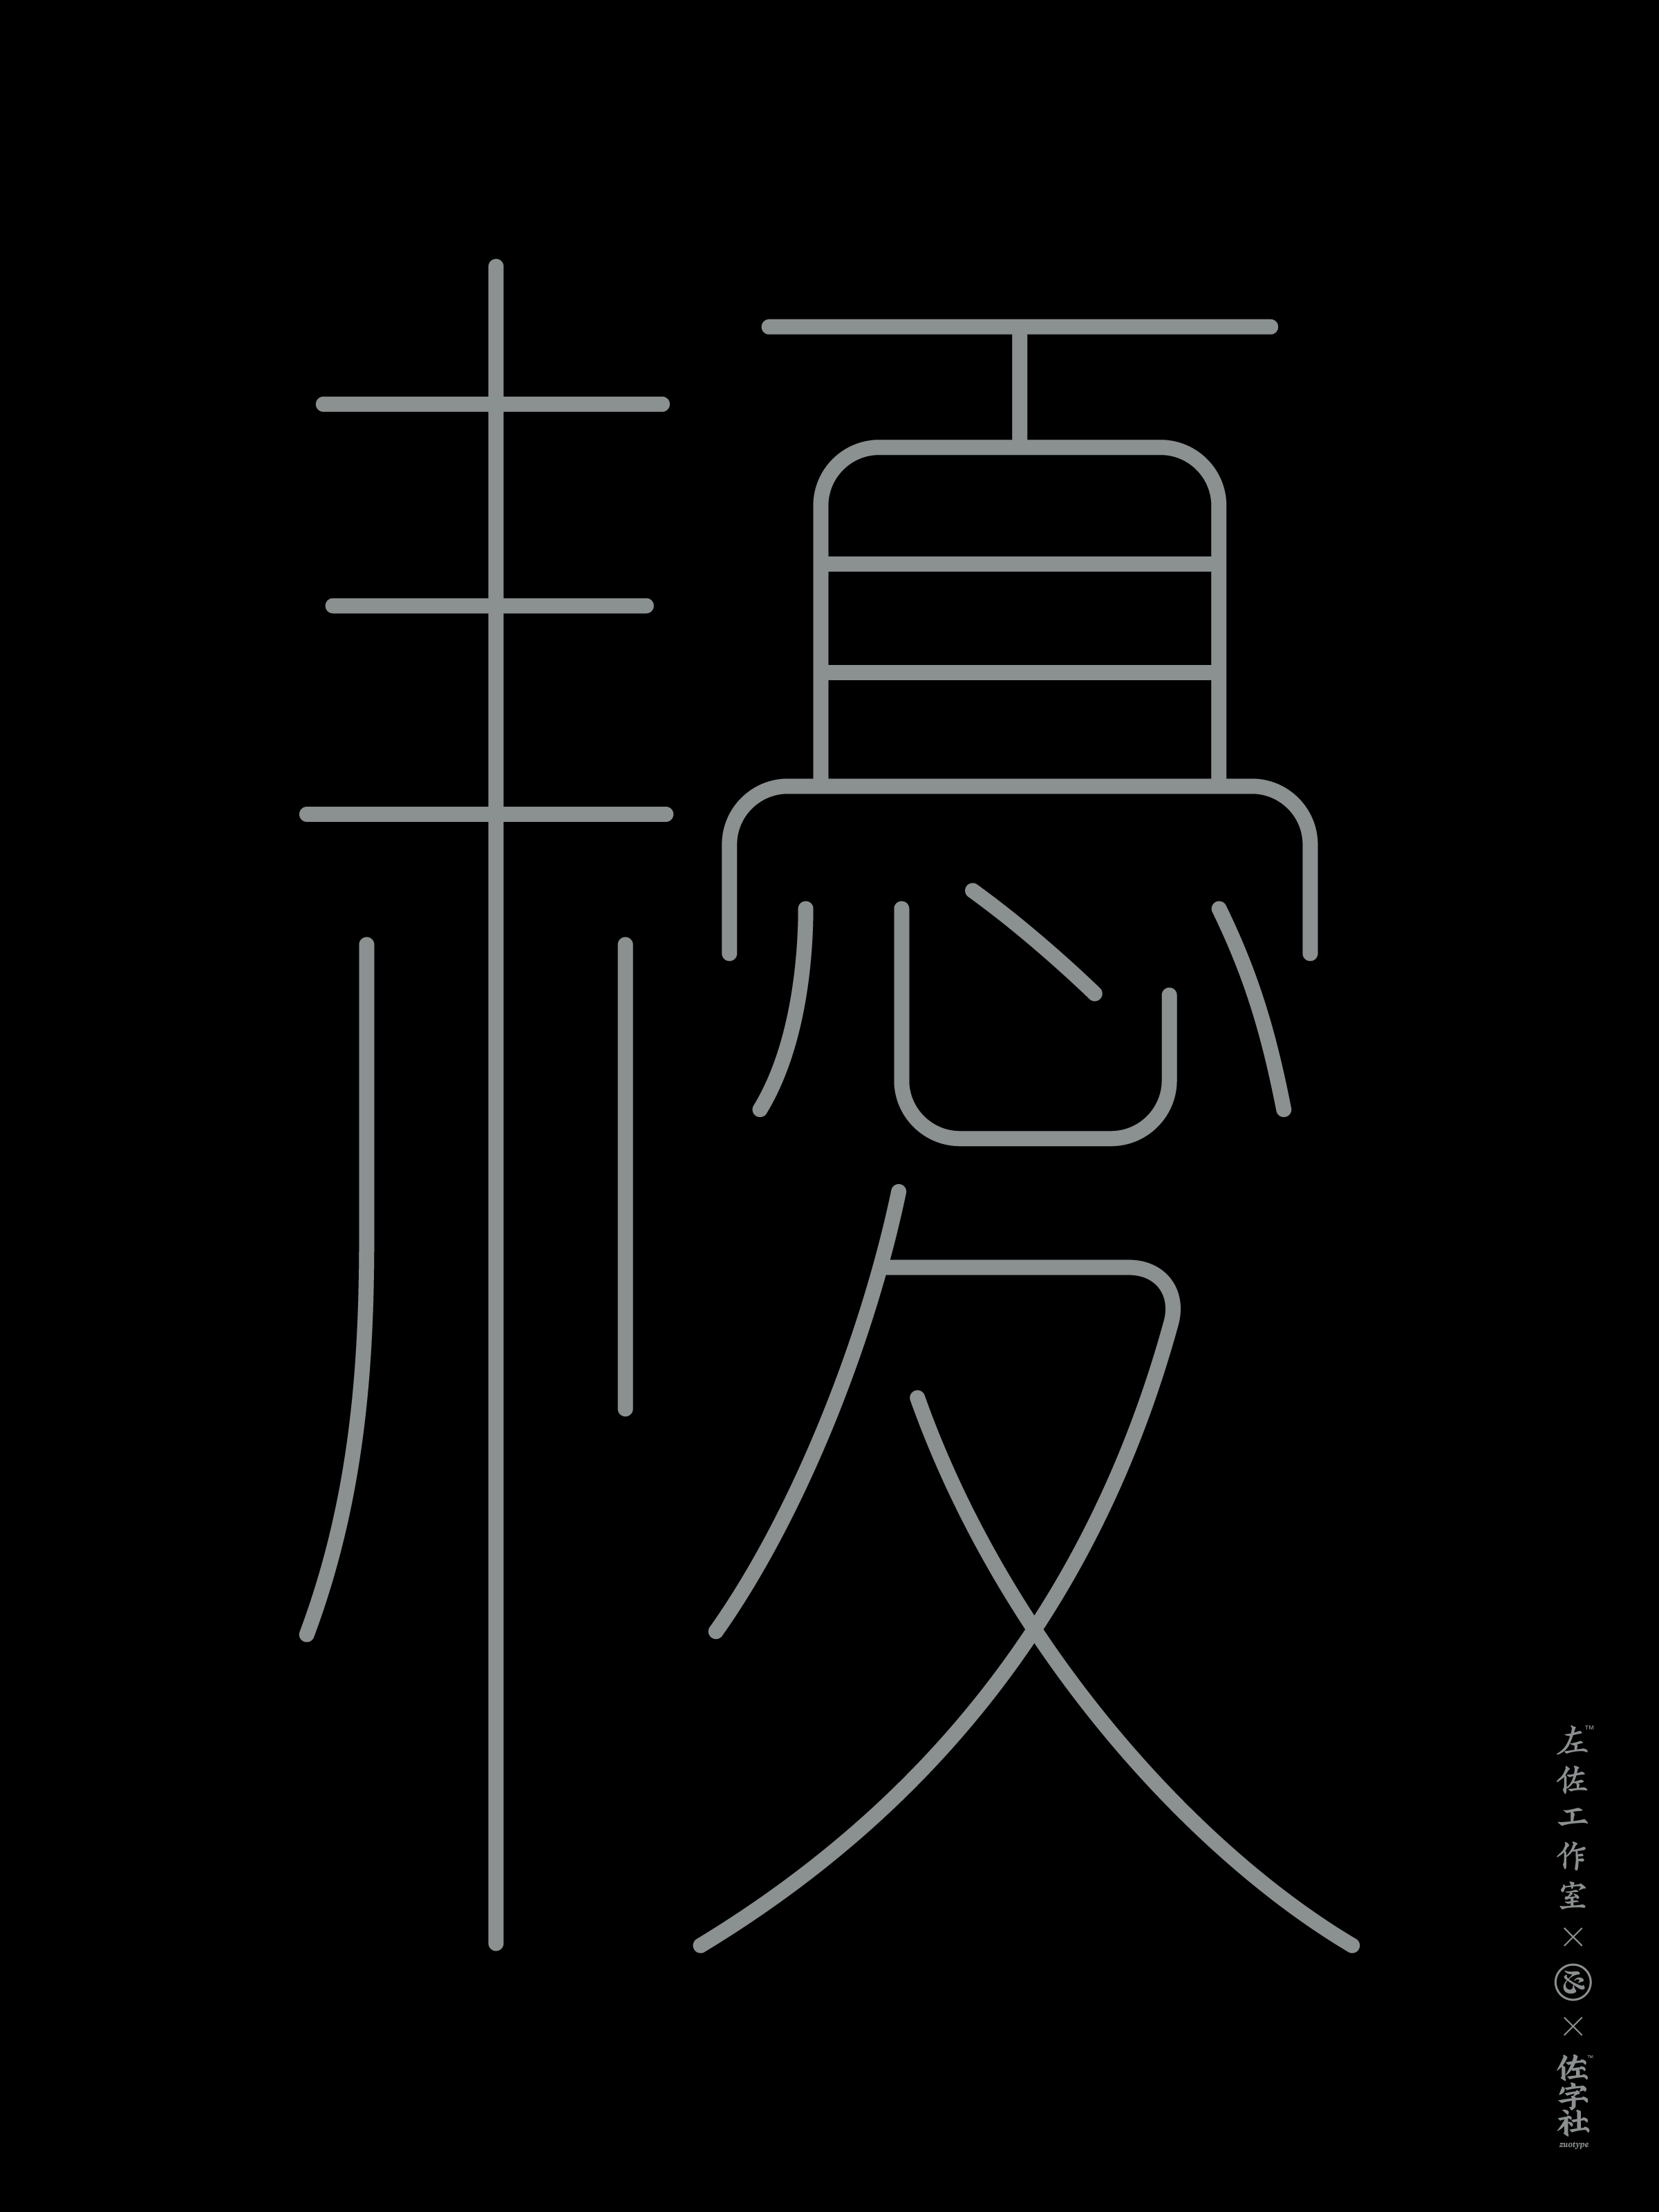 32P Collection of the latest Chinese font design schemes in 2021 #.32